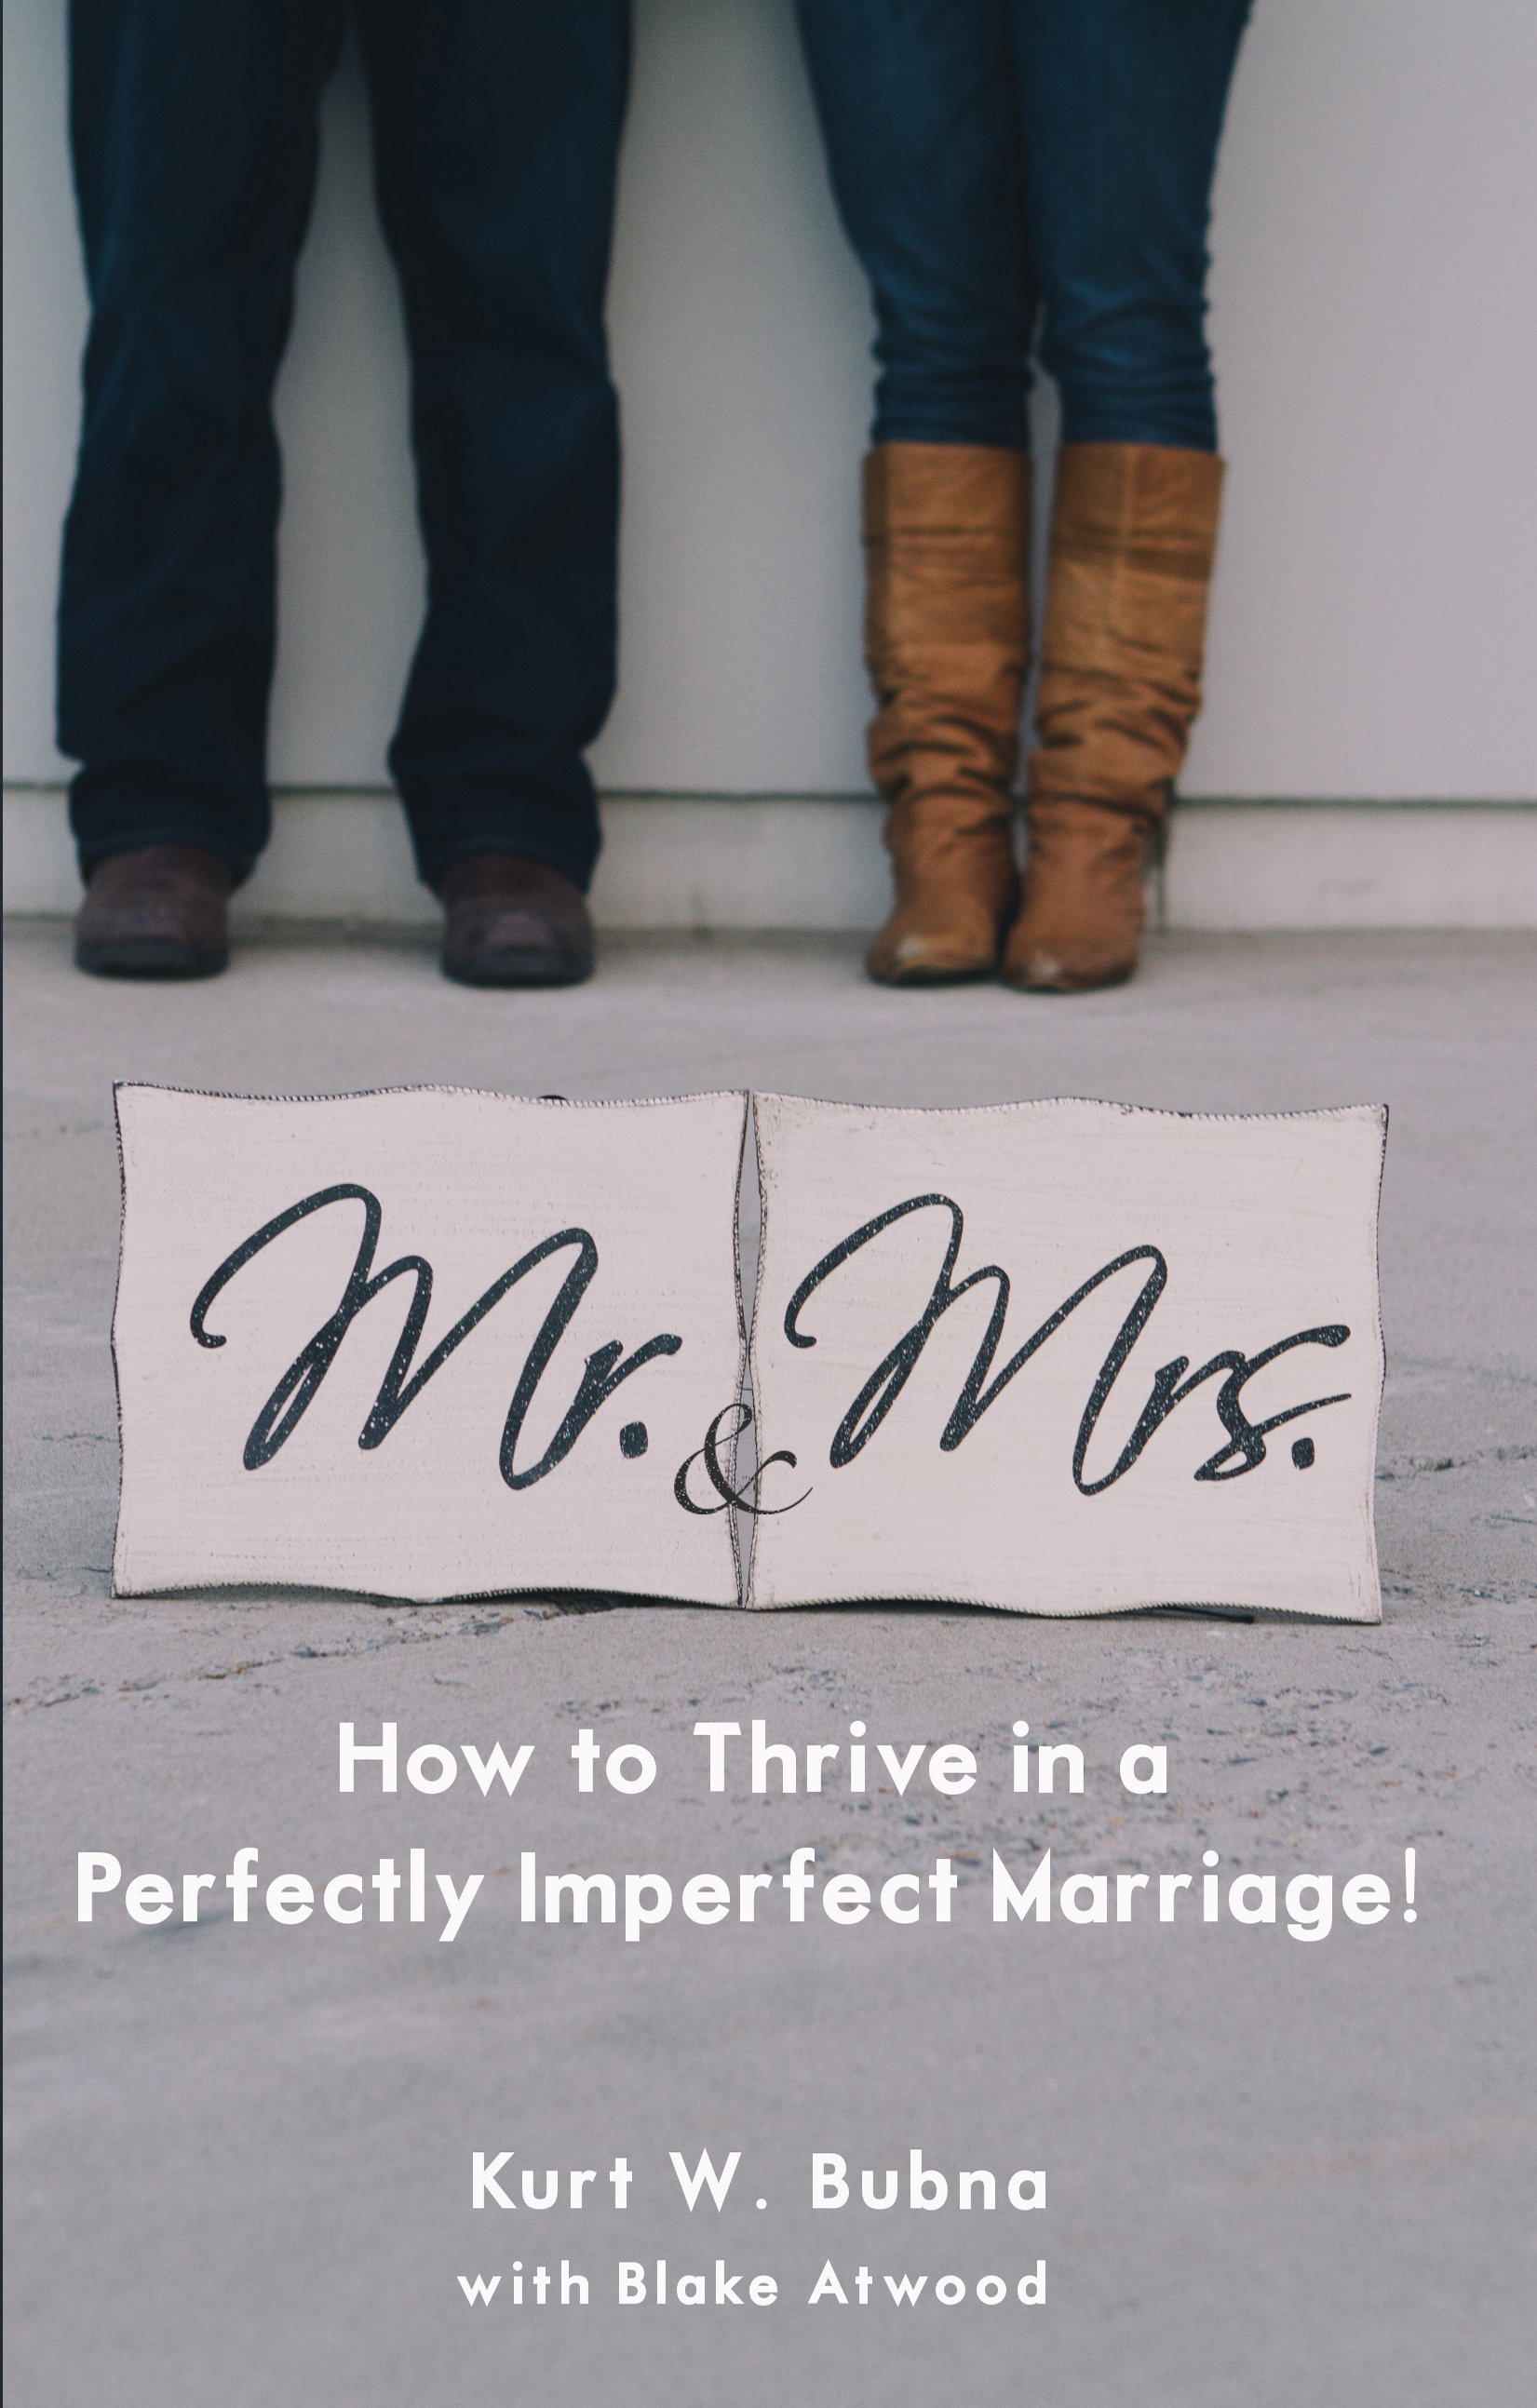 Mr. and Mrs.: How to Thrive in a Perfectly Imperfect Marriage